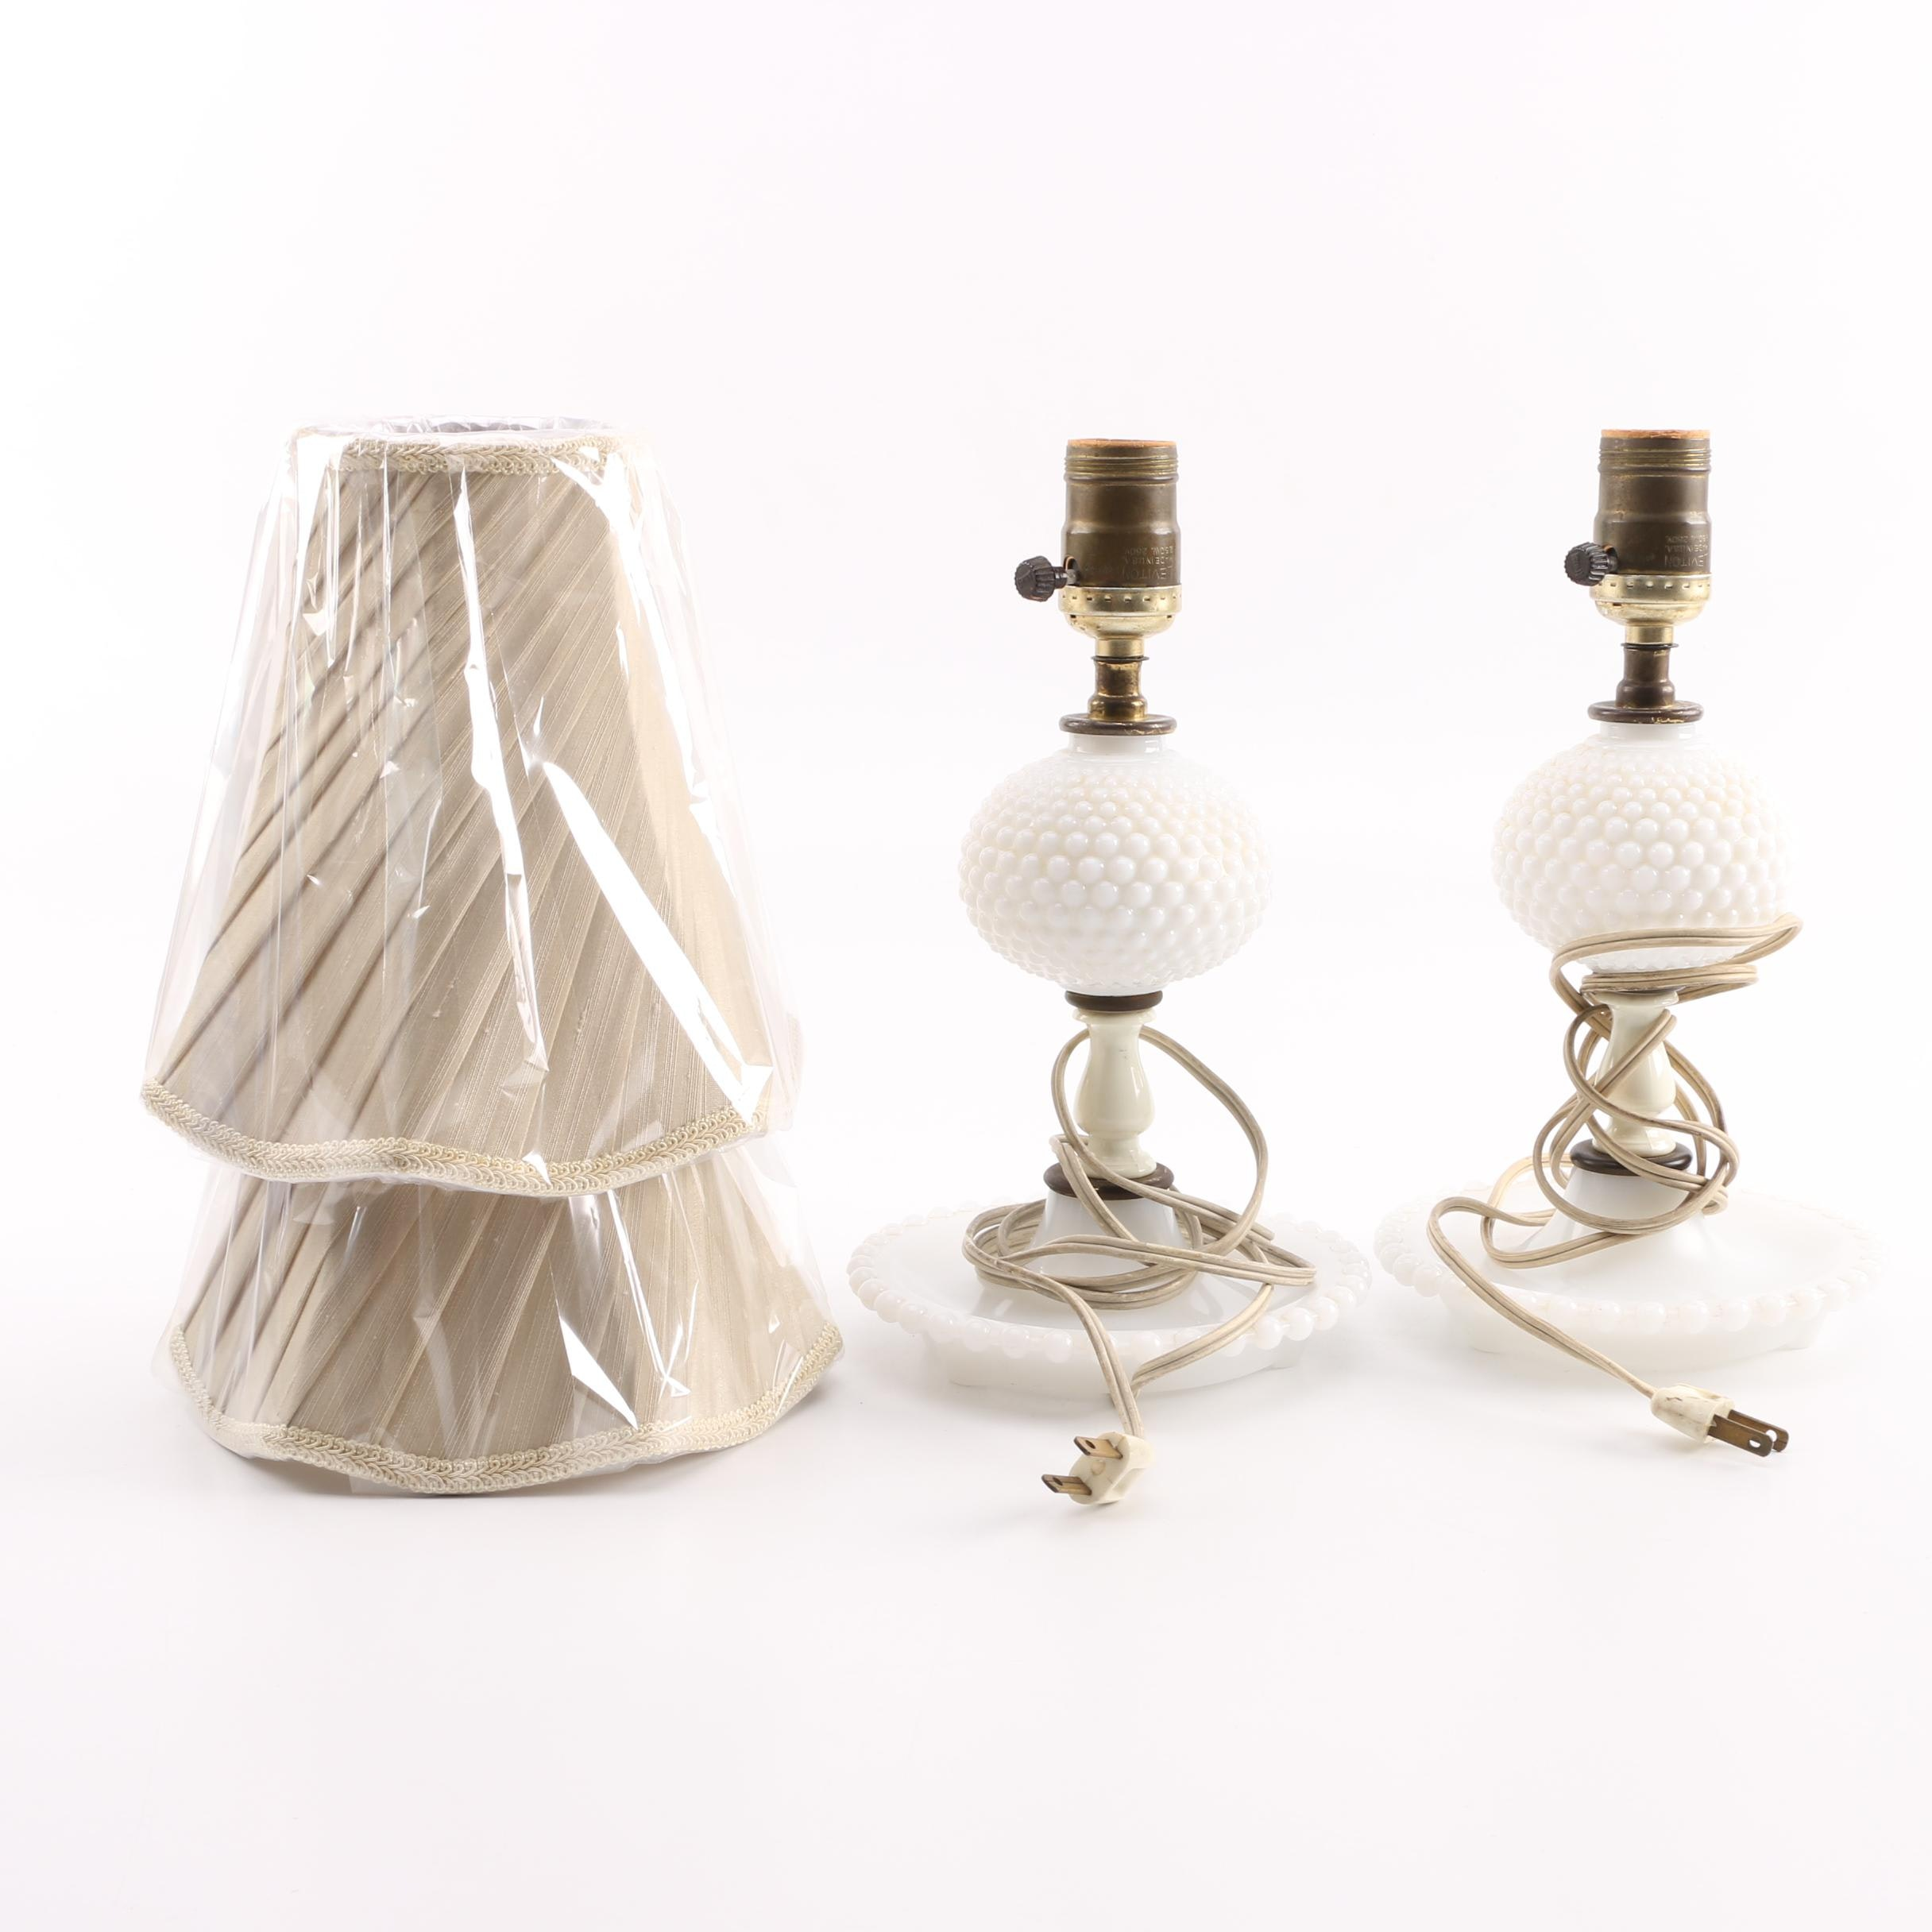 Vintage Hobnail Milk Glass Lamps with New Shades